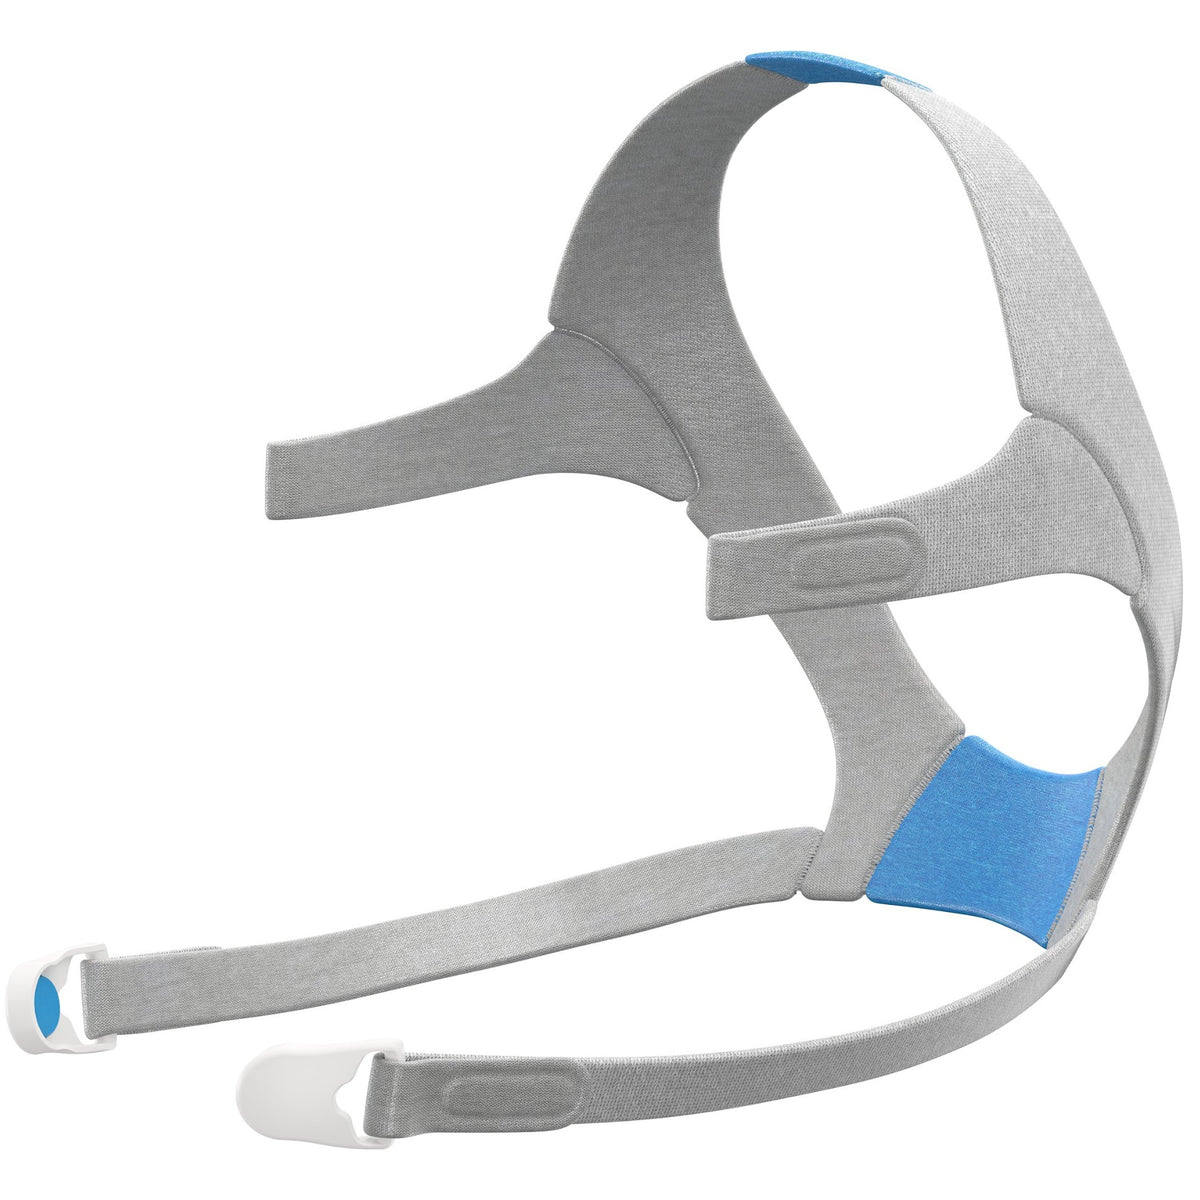 Headgear part from the full face mask airfit f20